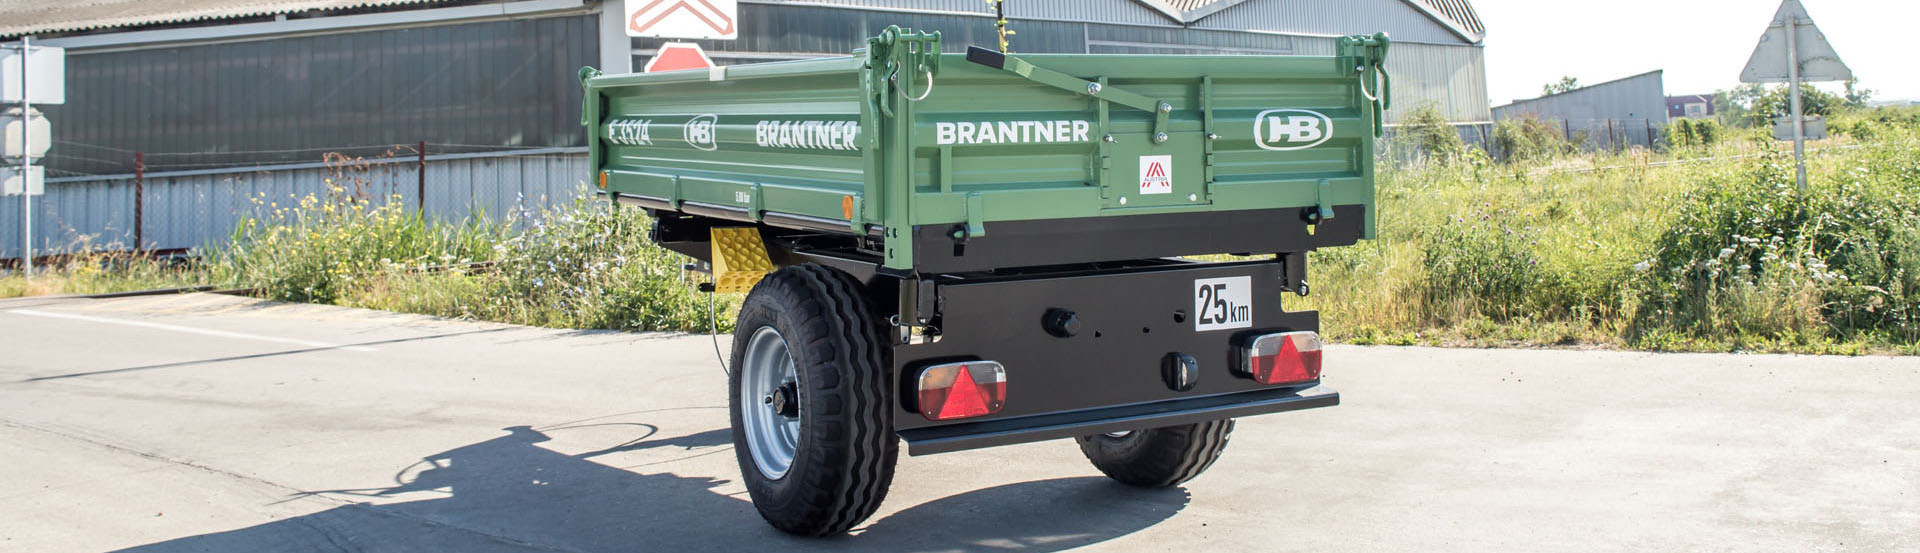 The E3524 single-axle threesidetipper  produced by Brantner.